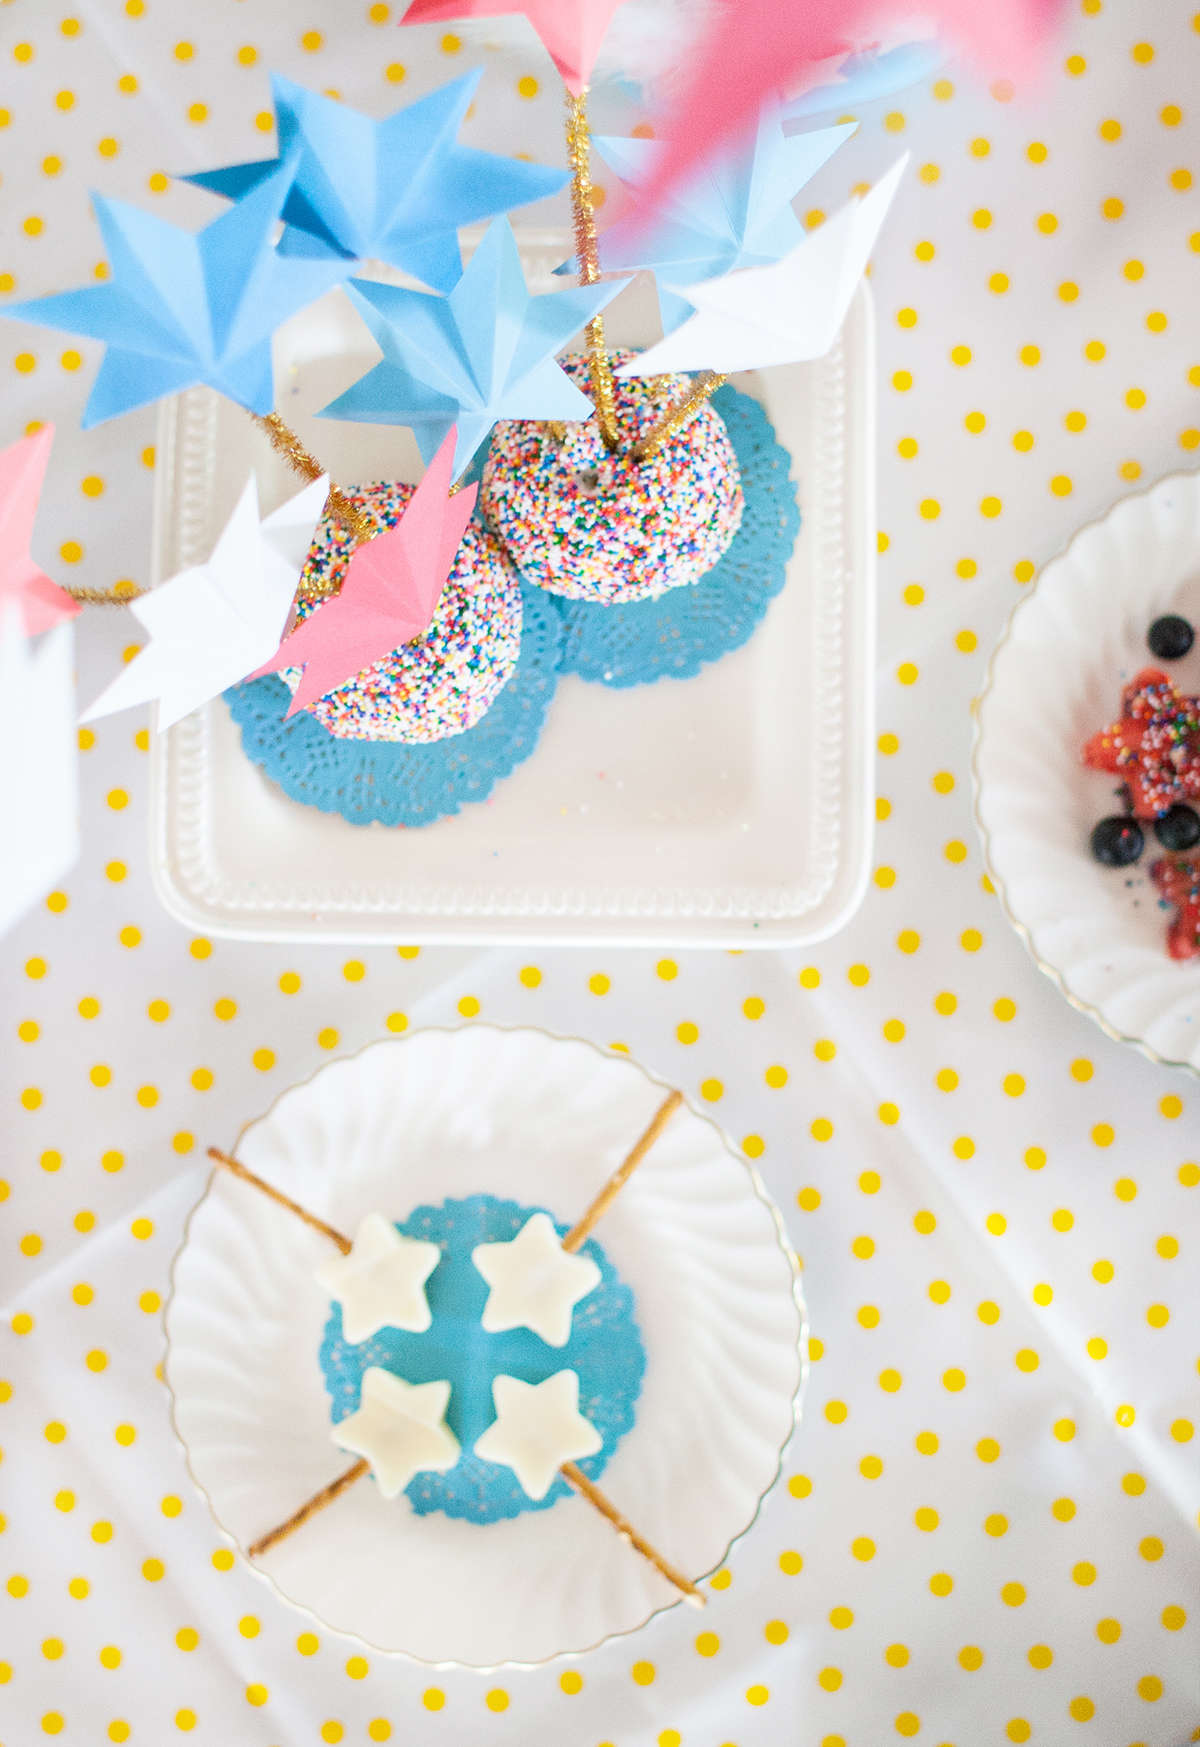 astrobrights 4th of july party ideas